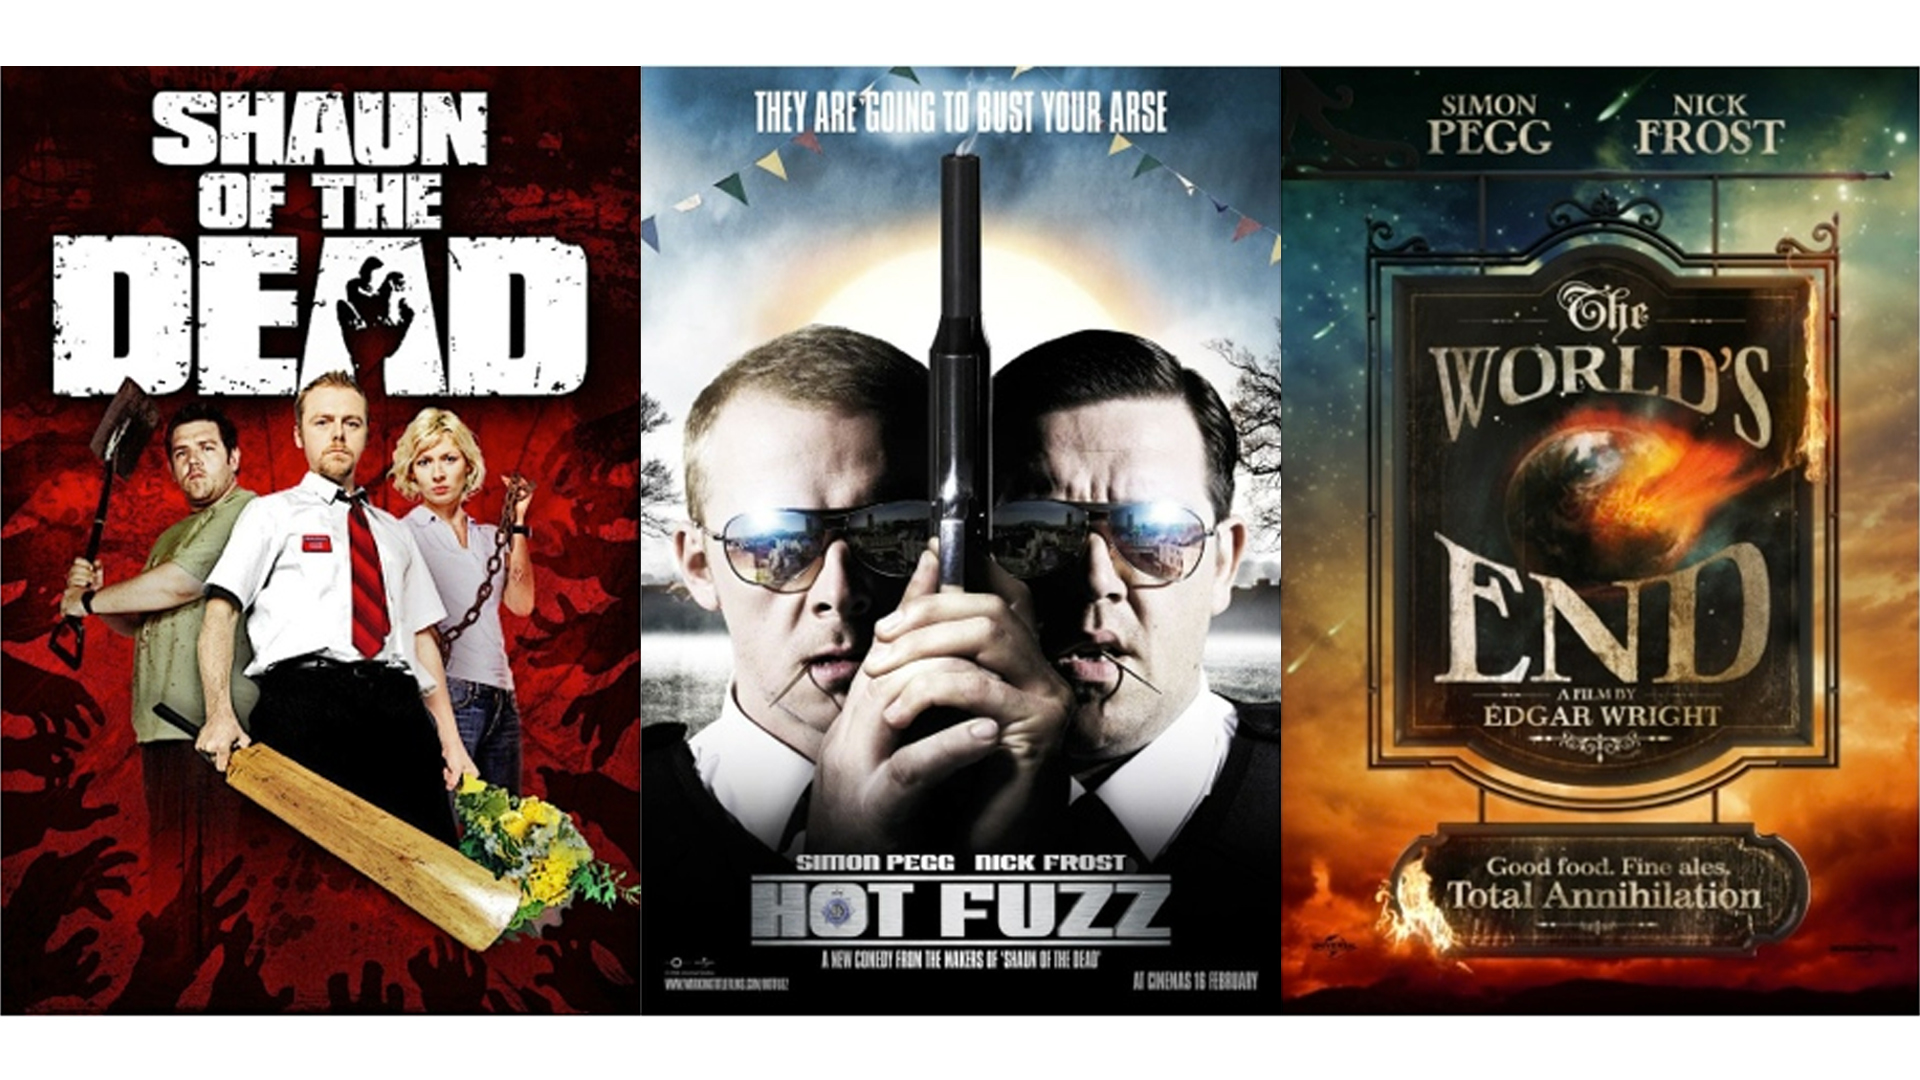 Let's get one thing straight,  SUPERZEROES is not a spoof!One of the biggest influences are the films of  Edgar Wright  and Simon Pegg - Shaun of the Dead ,  Hot fuzz  and  The Worlds End. All incredibly funny films, that would be easy to categorize as paradoy.However, unlike the scary Movie or The Naked Gun films that send up the genre,they are in fact  love letters to the zombie, action and sci fi genres;w  ith much more personal stories being told among the madness.   SUPERZEROES also takes influence from slapstick comedies such as  Some Mothers do have em and  Fawlty Towers  to the more bizarre/anarchic comedies such as  Monty Python ,  The Mighty Boosh and  The Young Ones to the more relatable and down to earth comedies  The Office  and  I'm Alan partridge .